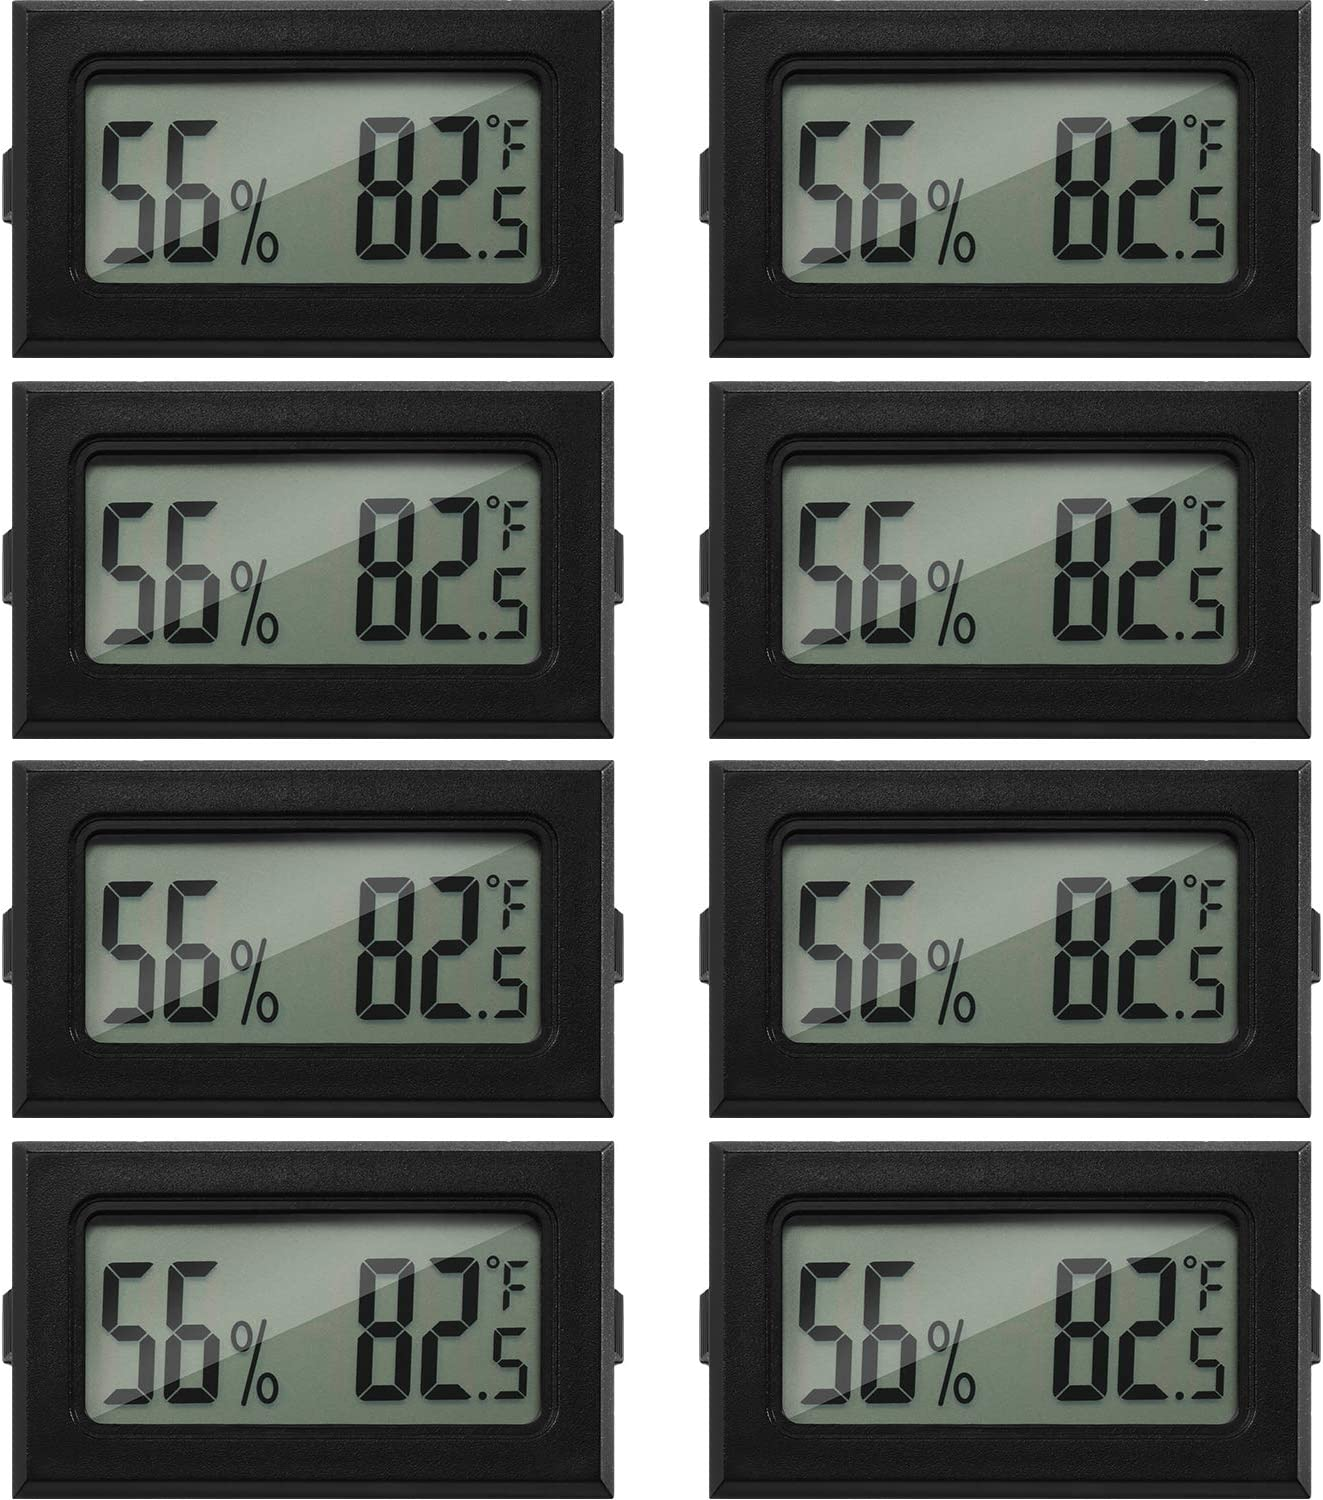 Mini Hygrometer Thermometer Digital Fahrenheit Temperature Humidity Meter Gauge LCD Display Indoor Thermometer Hygrometer for Home Incubators Reptile Greenhouse and Office (8)